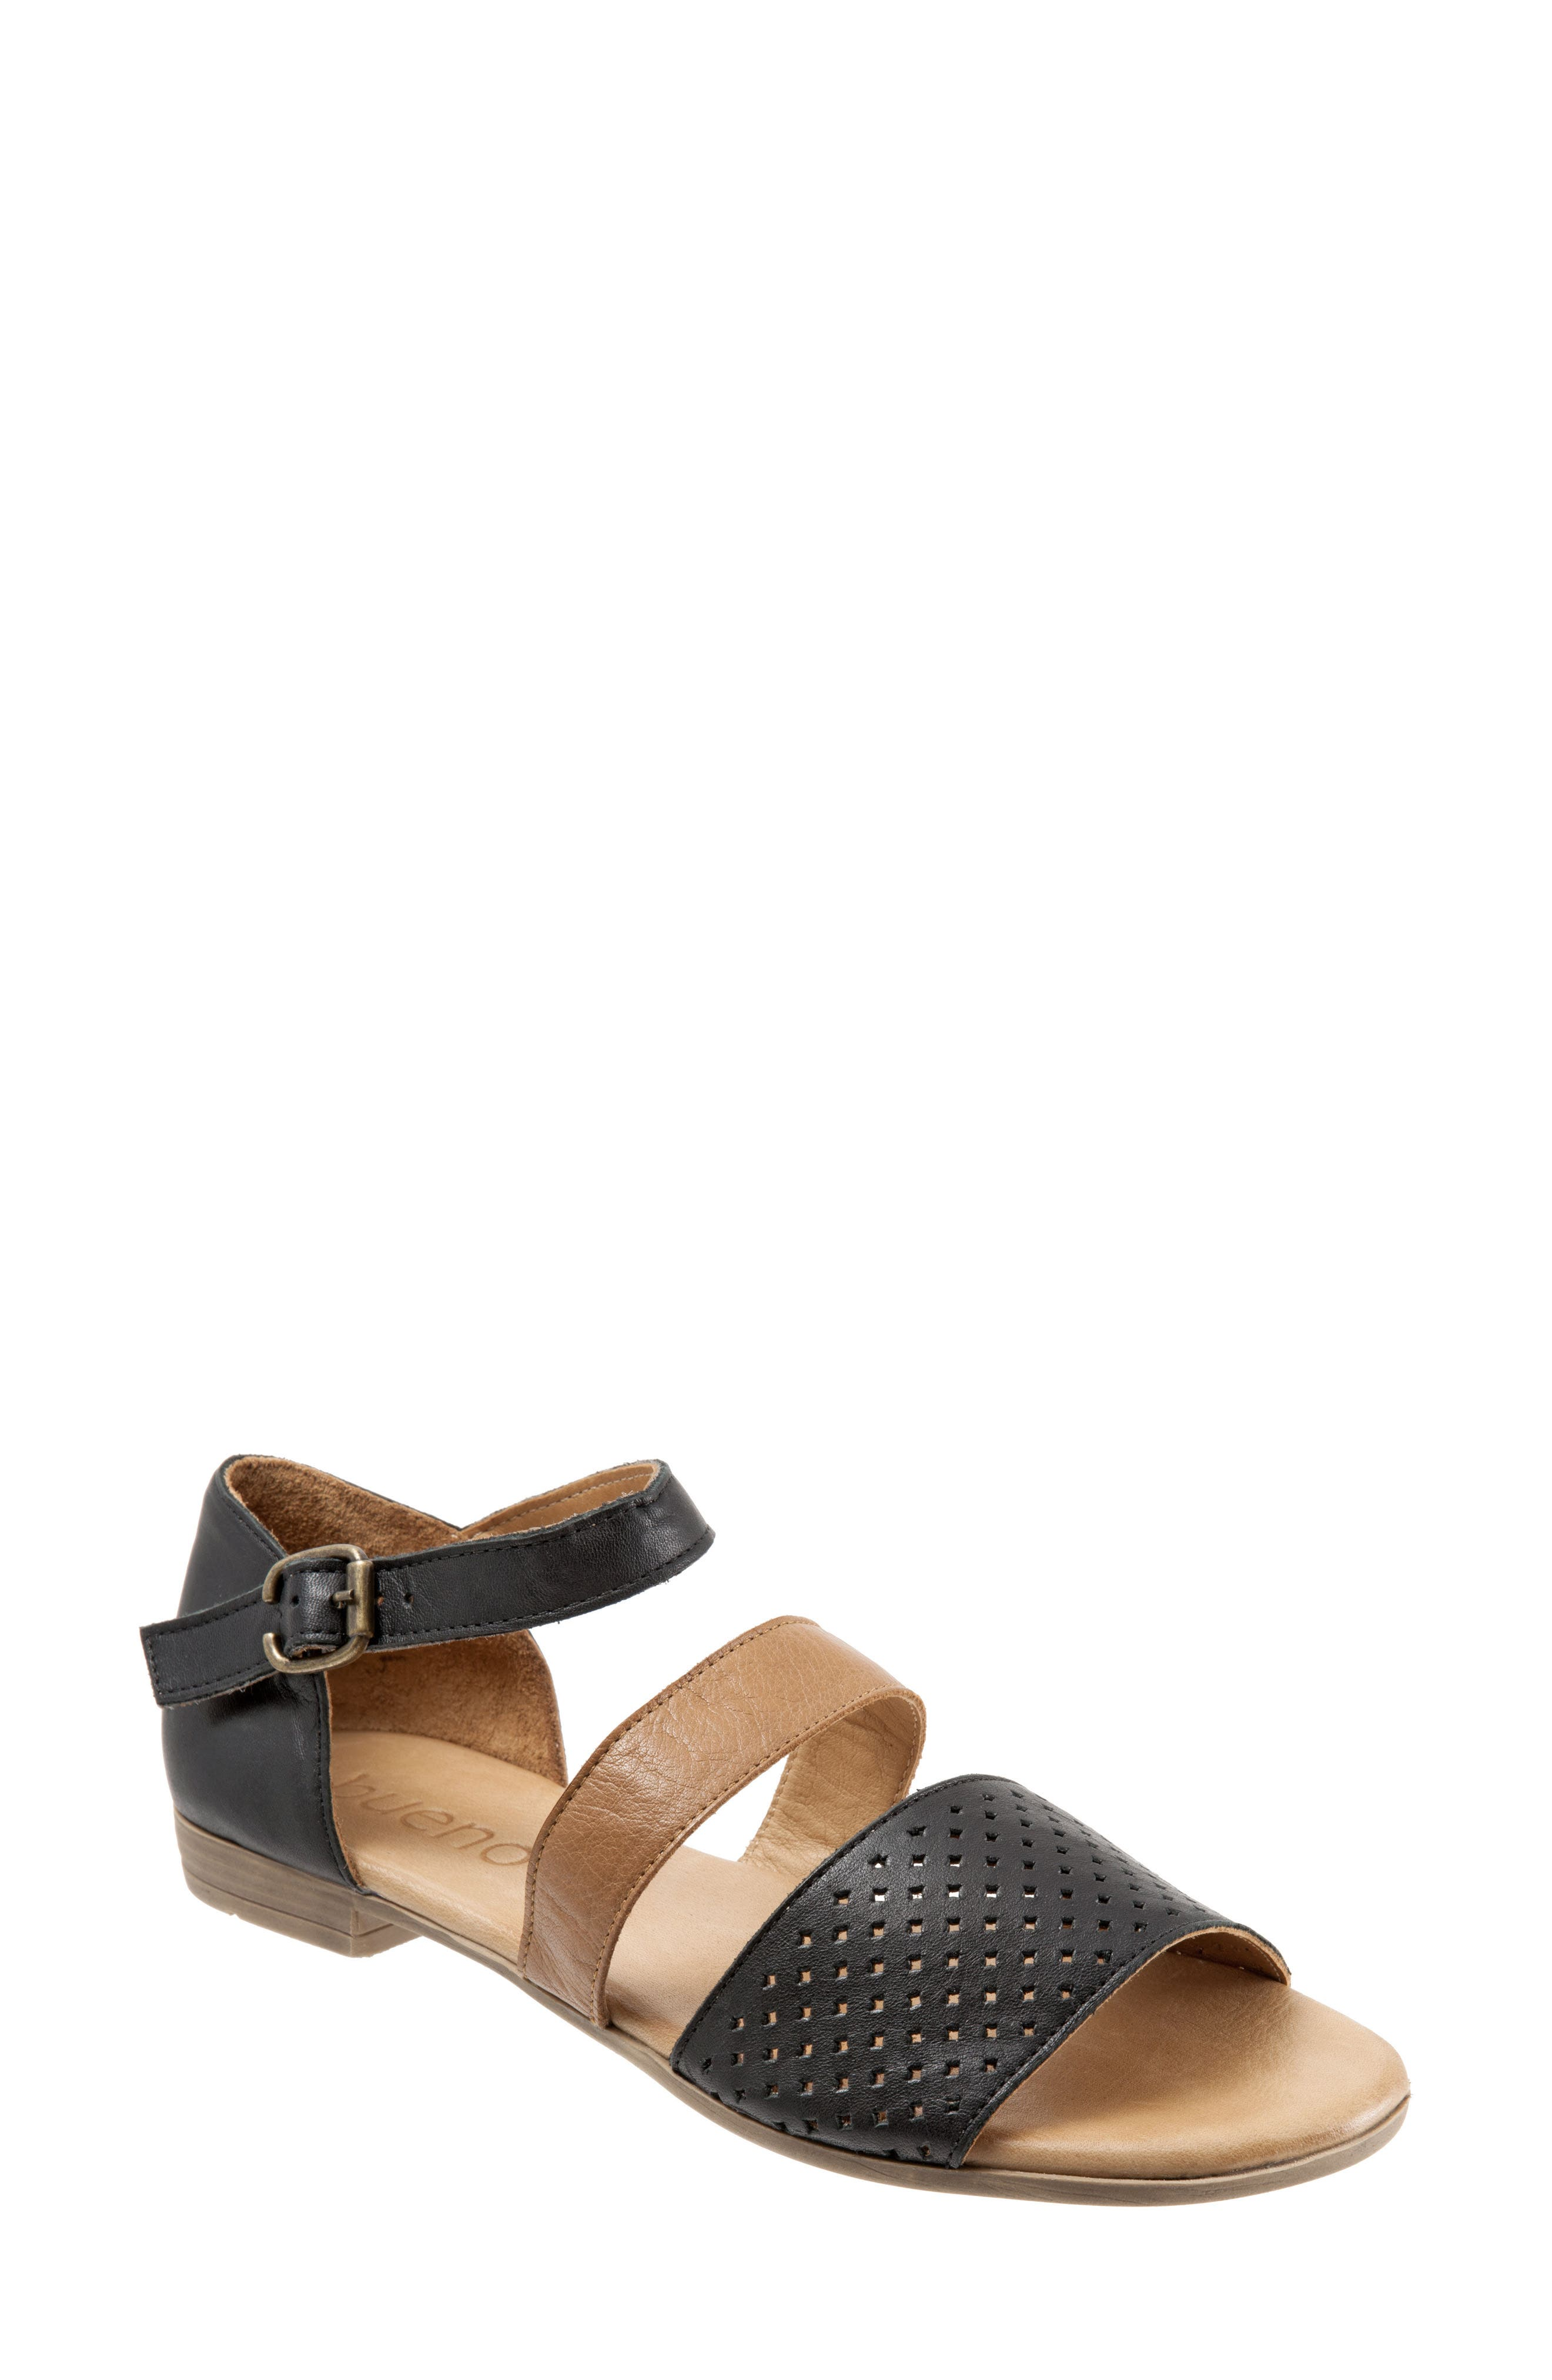 Janet Perforated Flat Sandal,                         Main,                         color, BLACK LEATHER